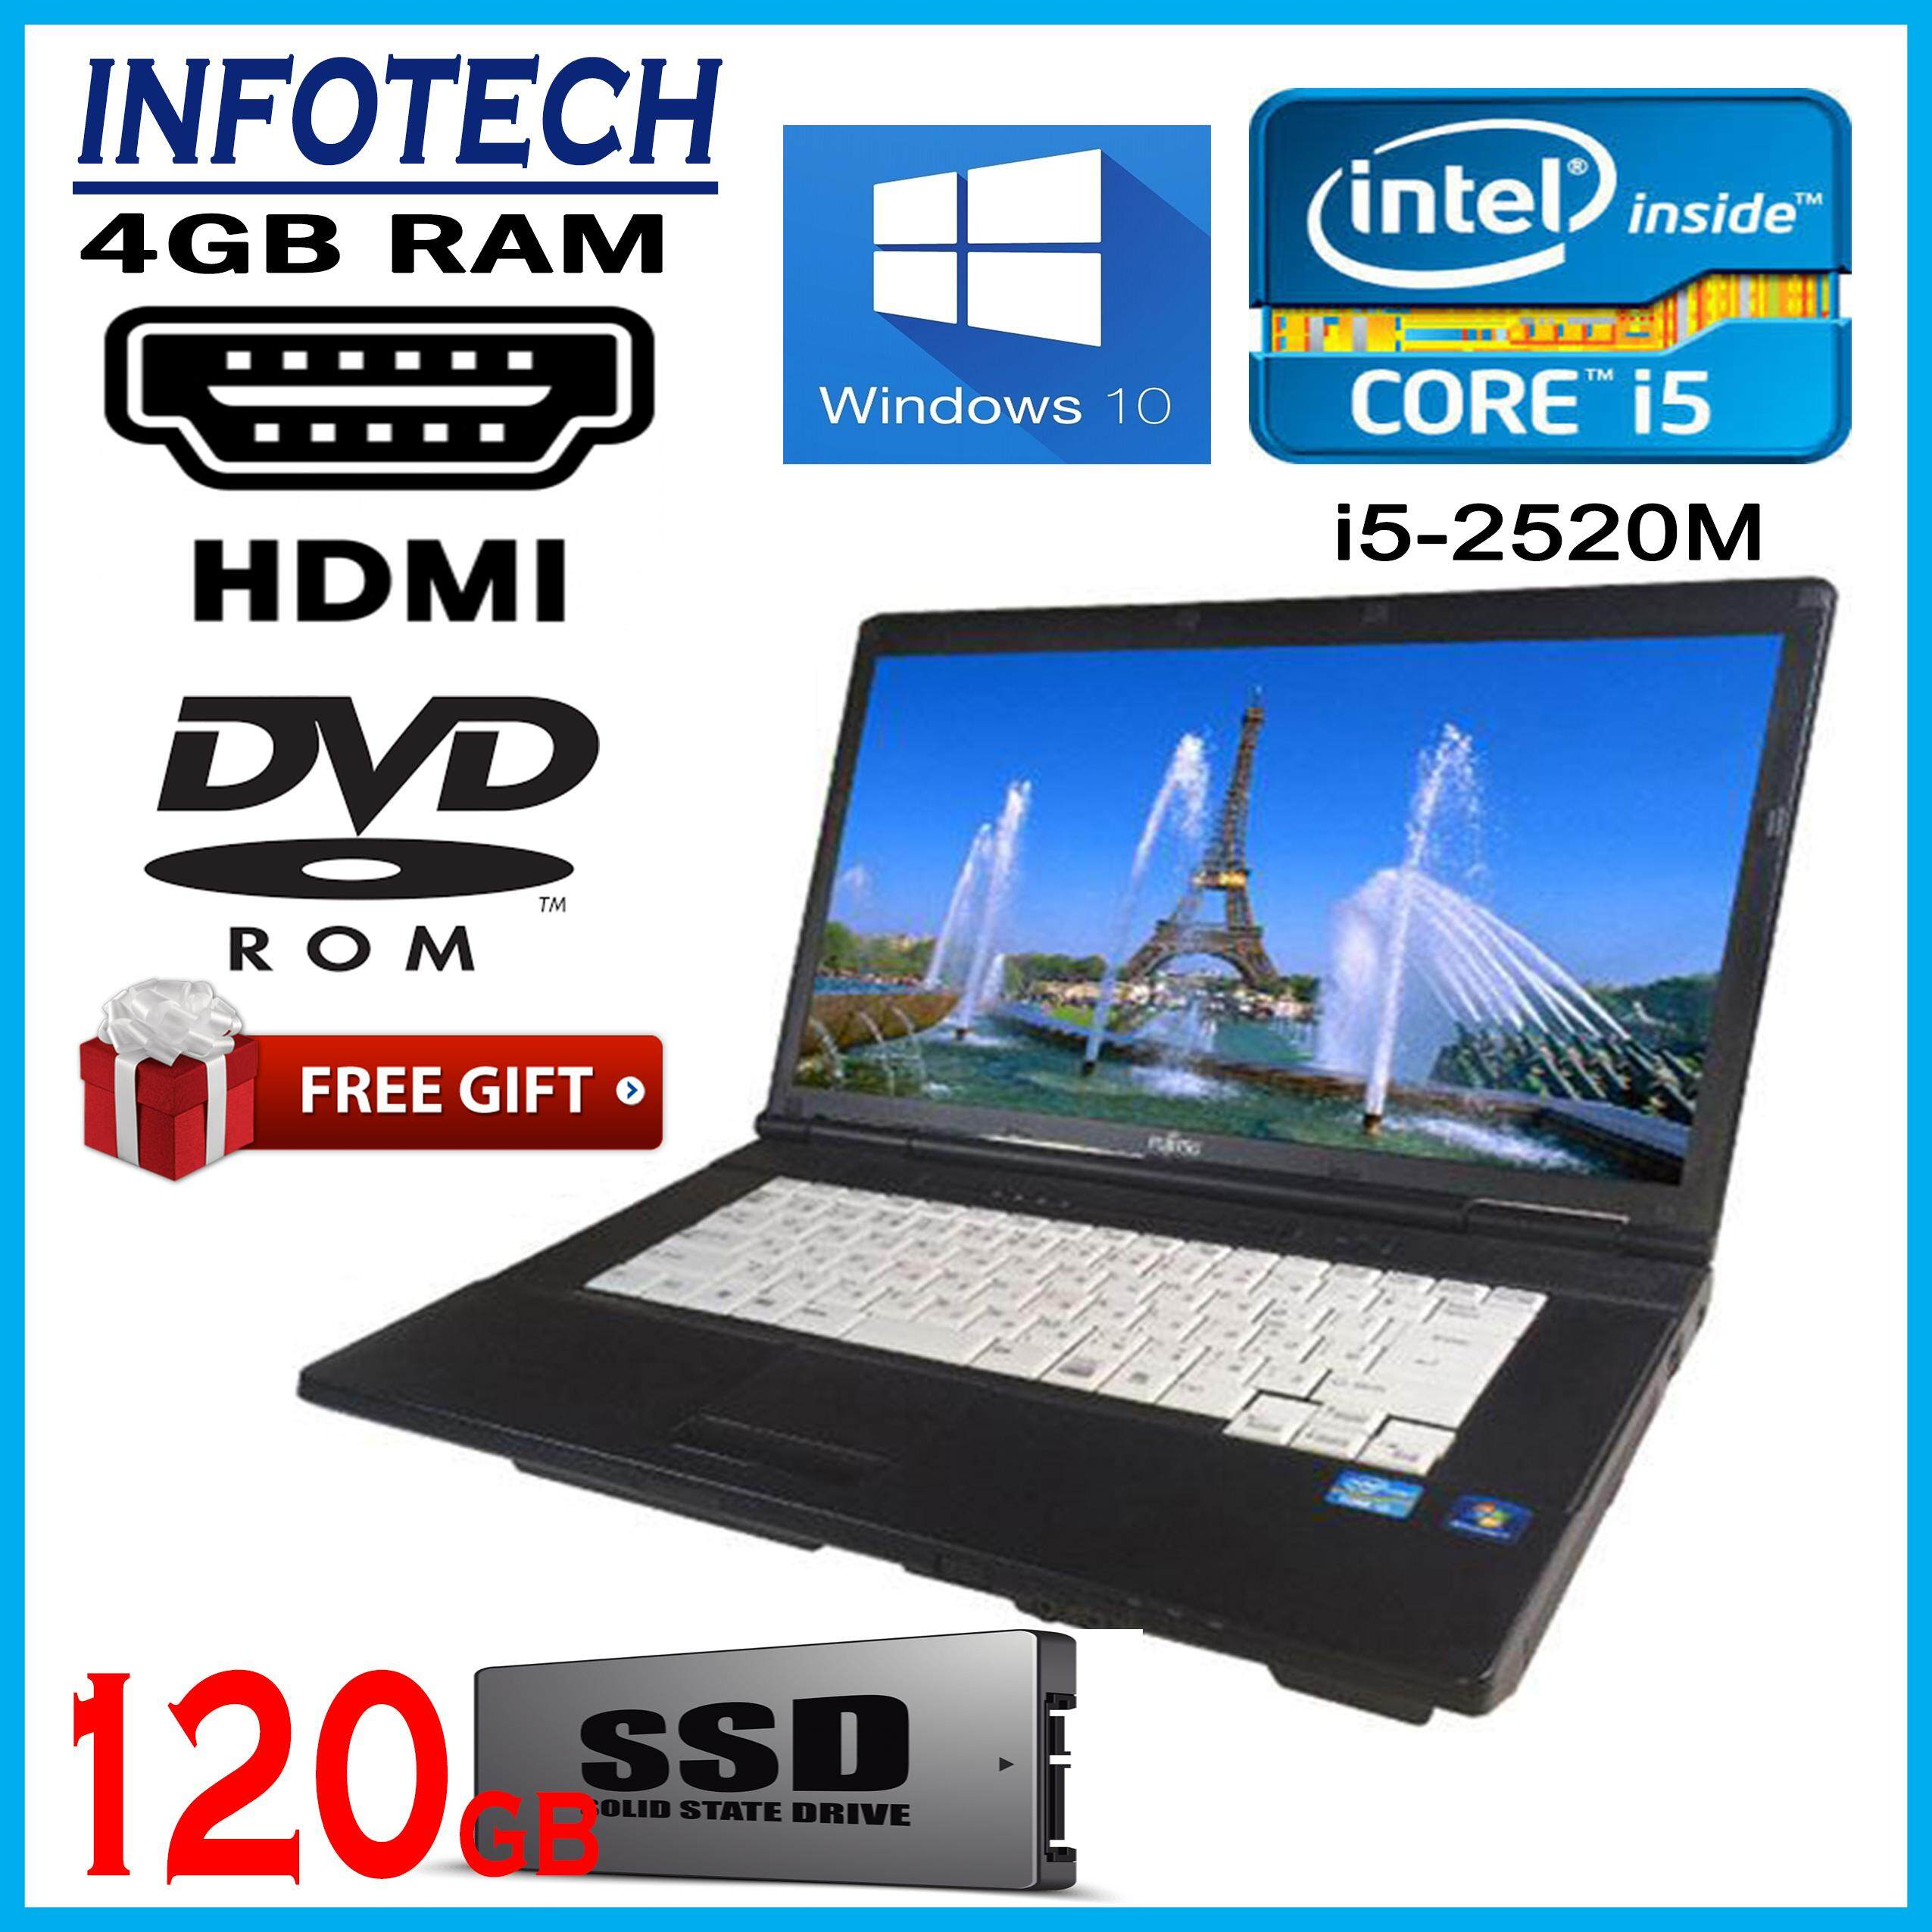 Fujitsu A561 intel core i5 2520M 3.2ghz , 4GB DDR3 , 120gb SSD , W7PRO , 15.6 with HDMI WIFI DVD laptop notebook Lifebook (refurbished) Malaysia